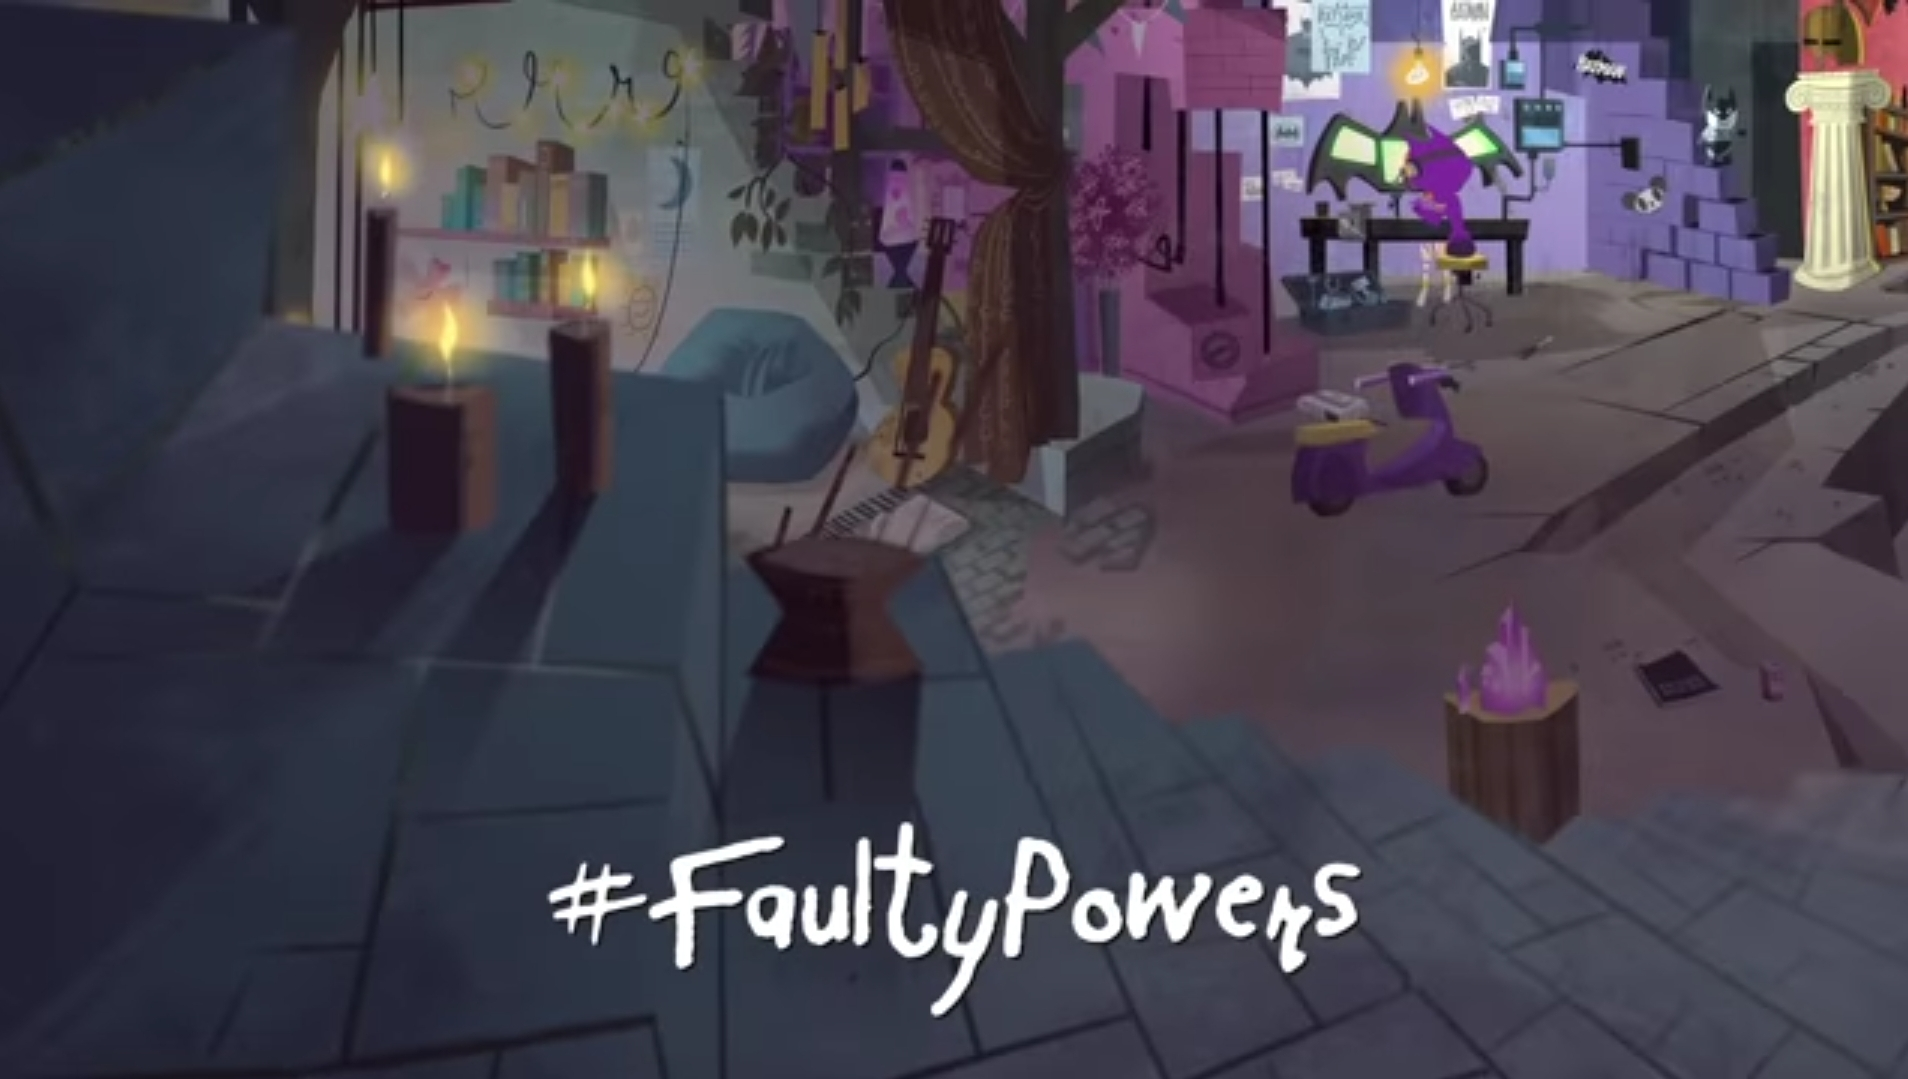 Faulty Powers